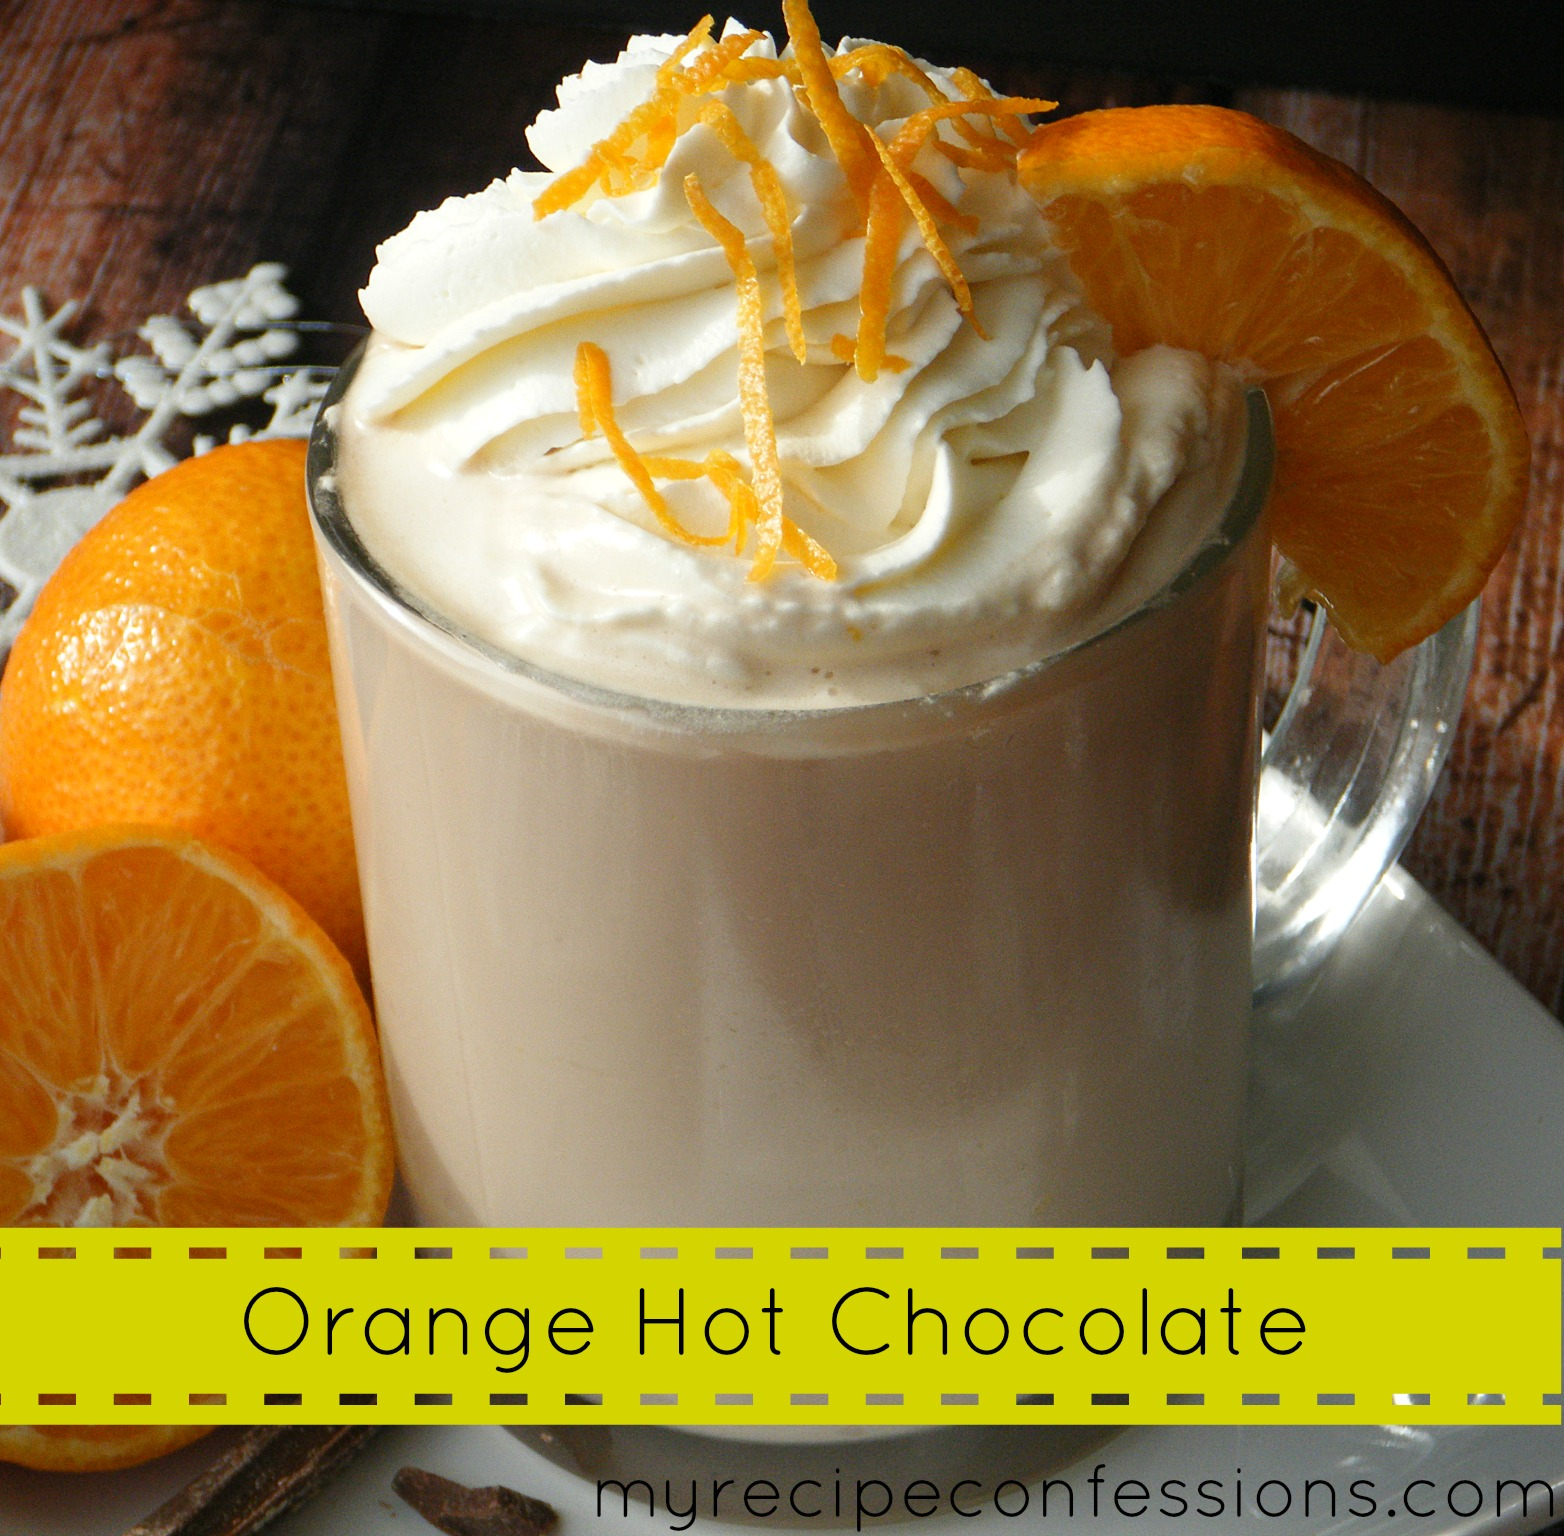 Orange Hot Chocolate - My Recipe Confessions